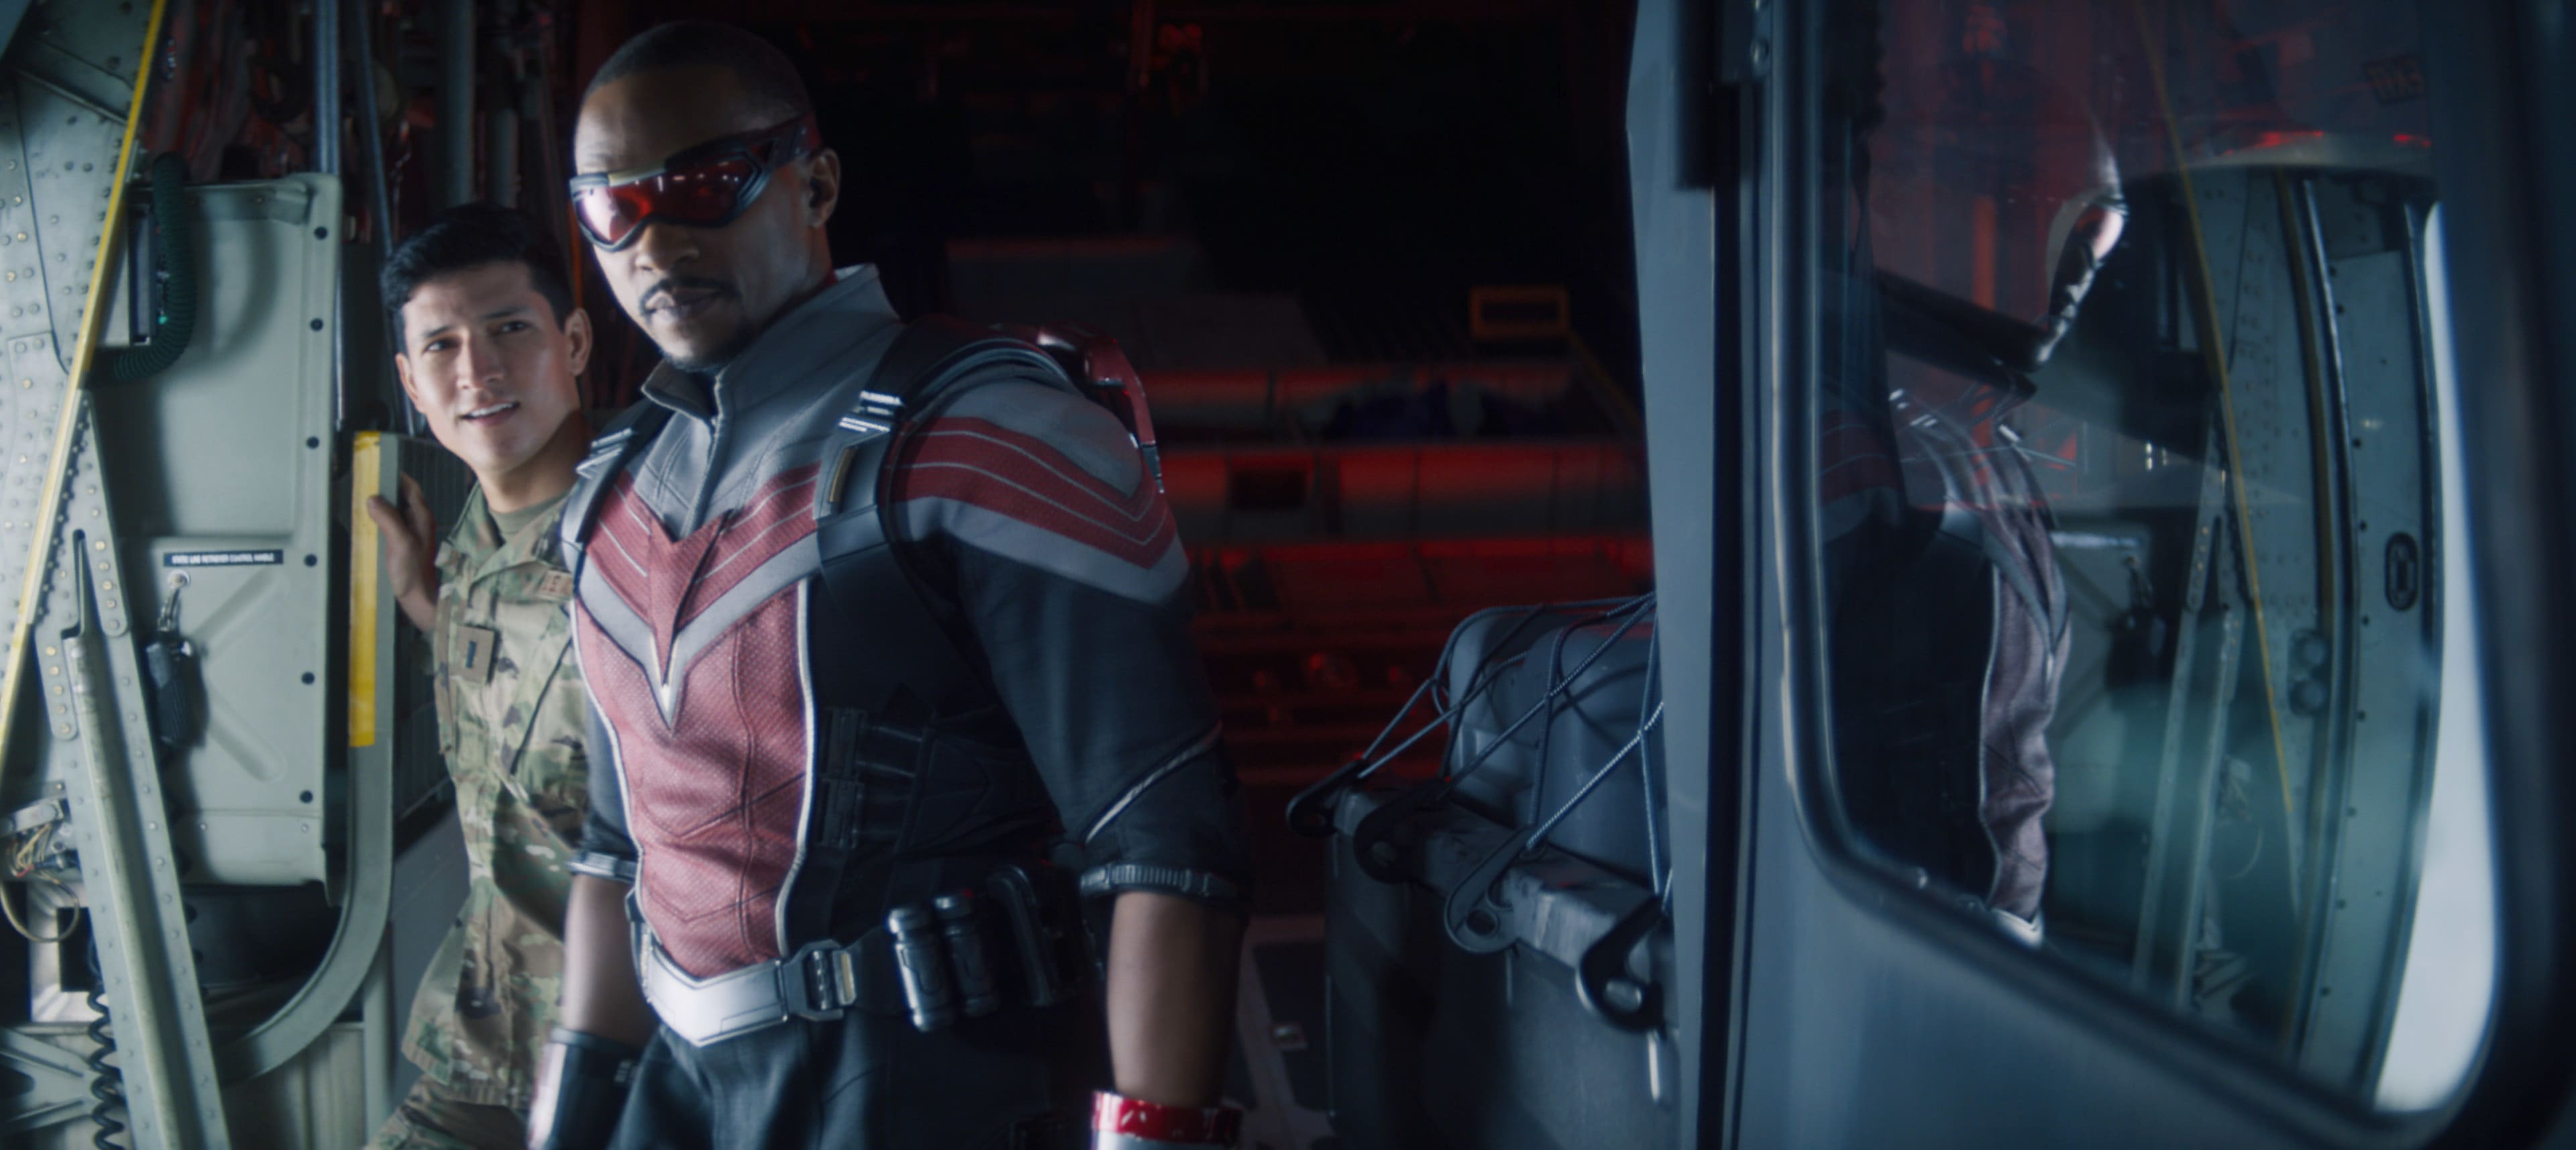 (Center): Falcon/Sam Wilson (Anthony Mackie) in Marvel Studios' THE FALCON AND THE WINTER SOLDIER exclusively on Disney+. Photo courtesy of Marvel Studios. ©Marvel Studios 2021. All Rights Reserved.